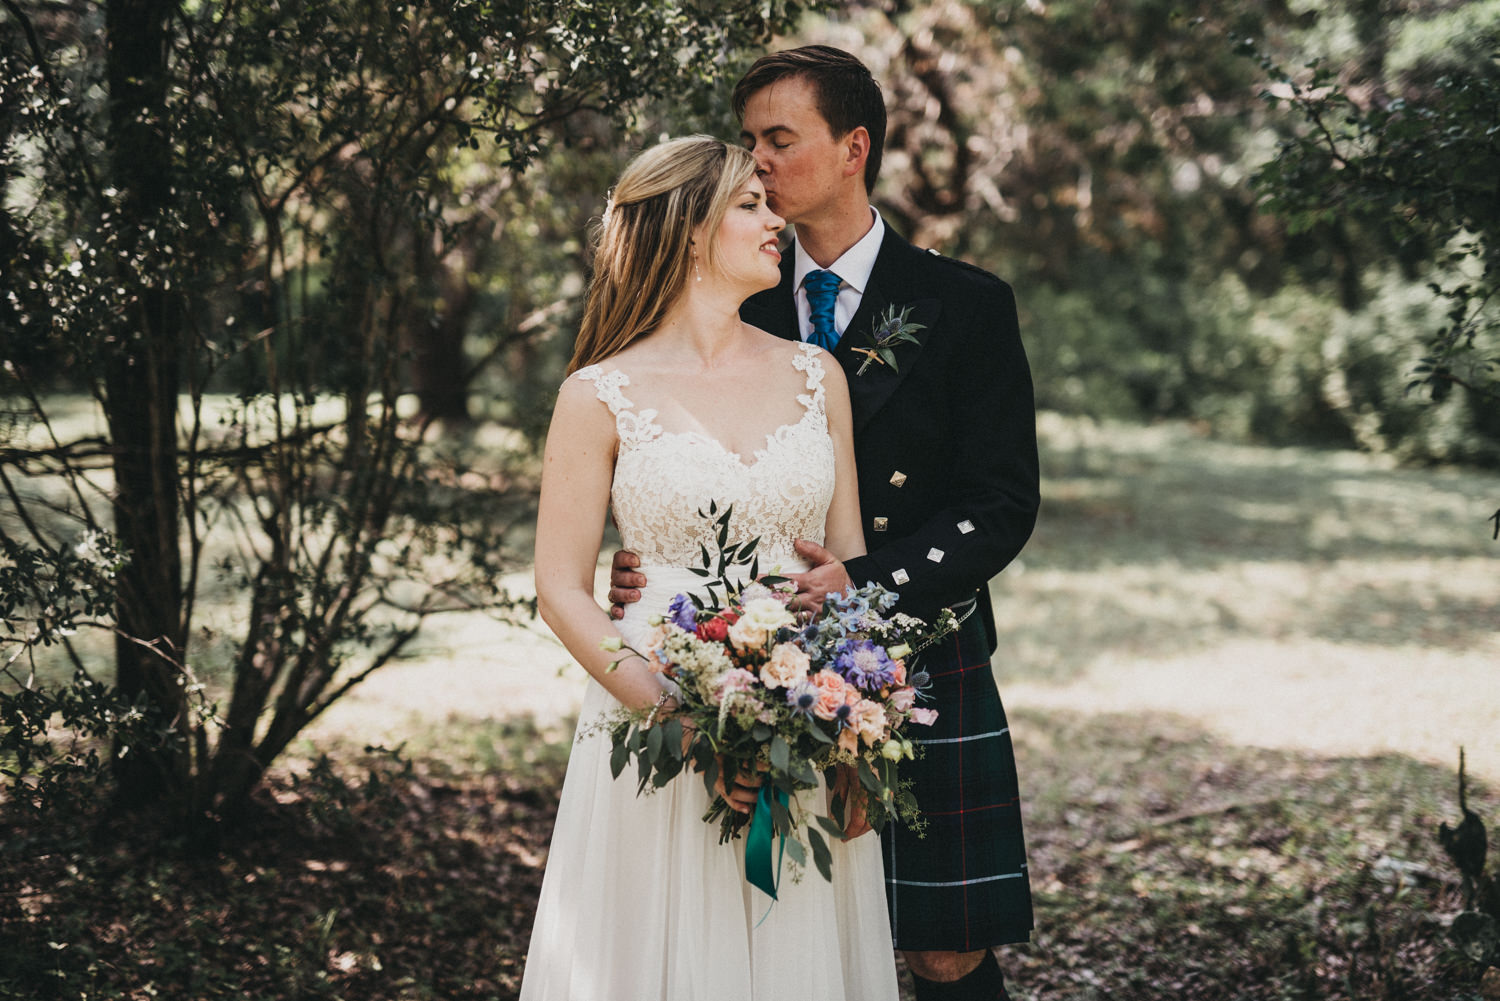 Scottish Wedding in Texas